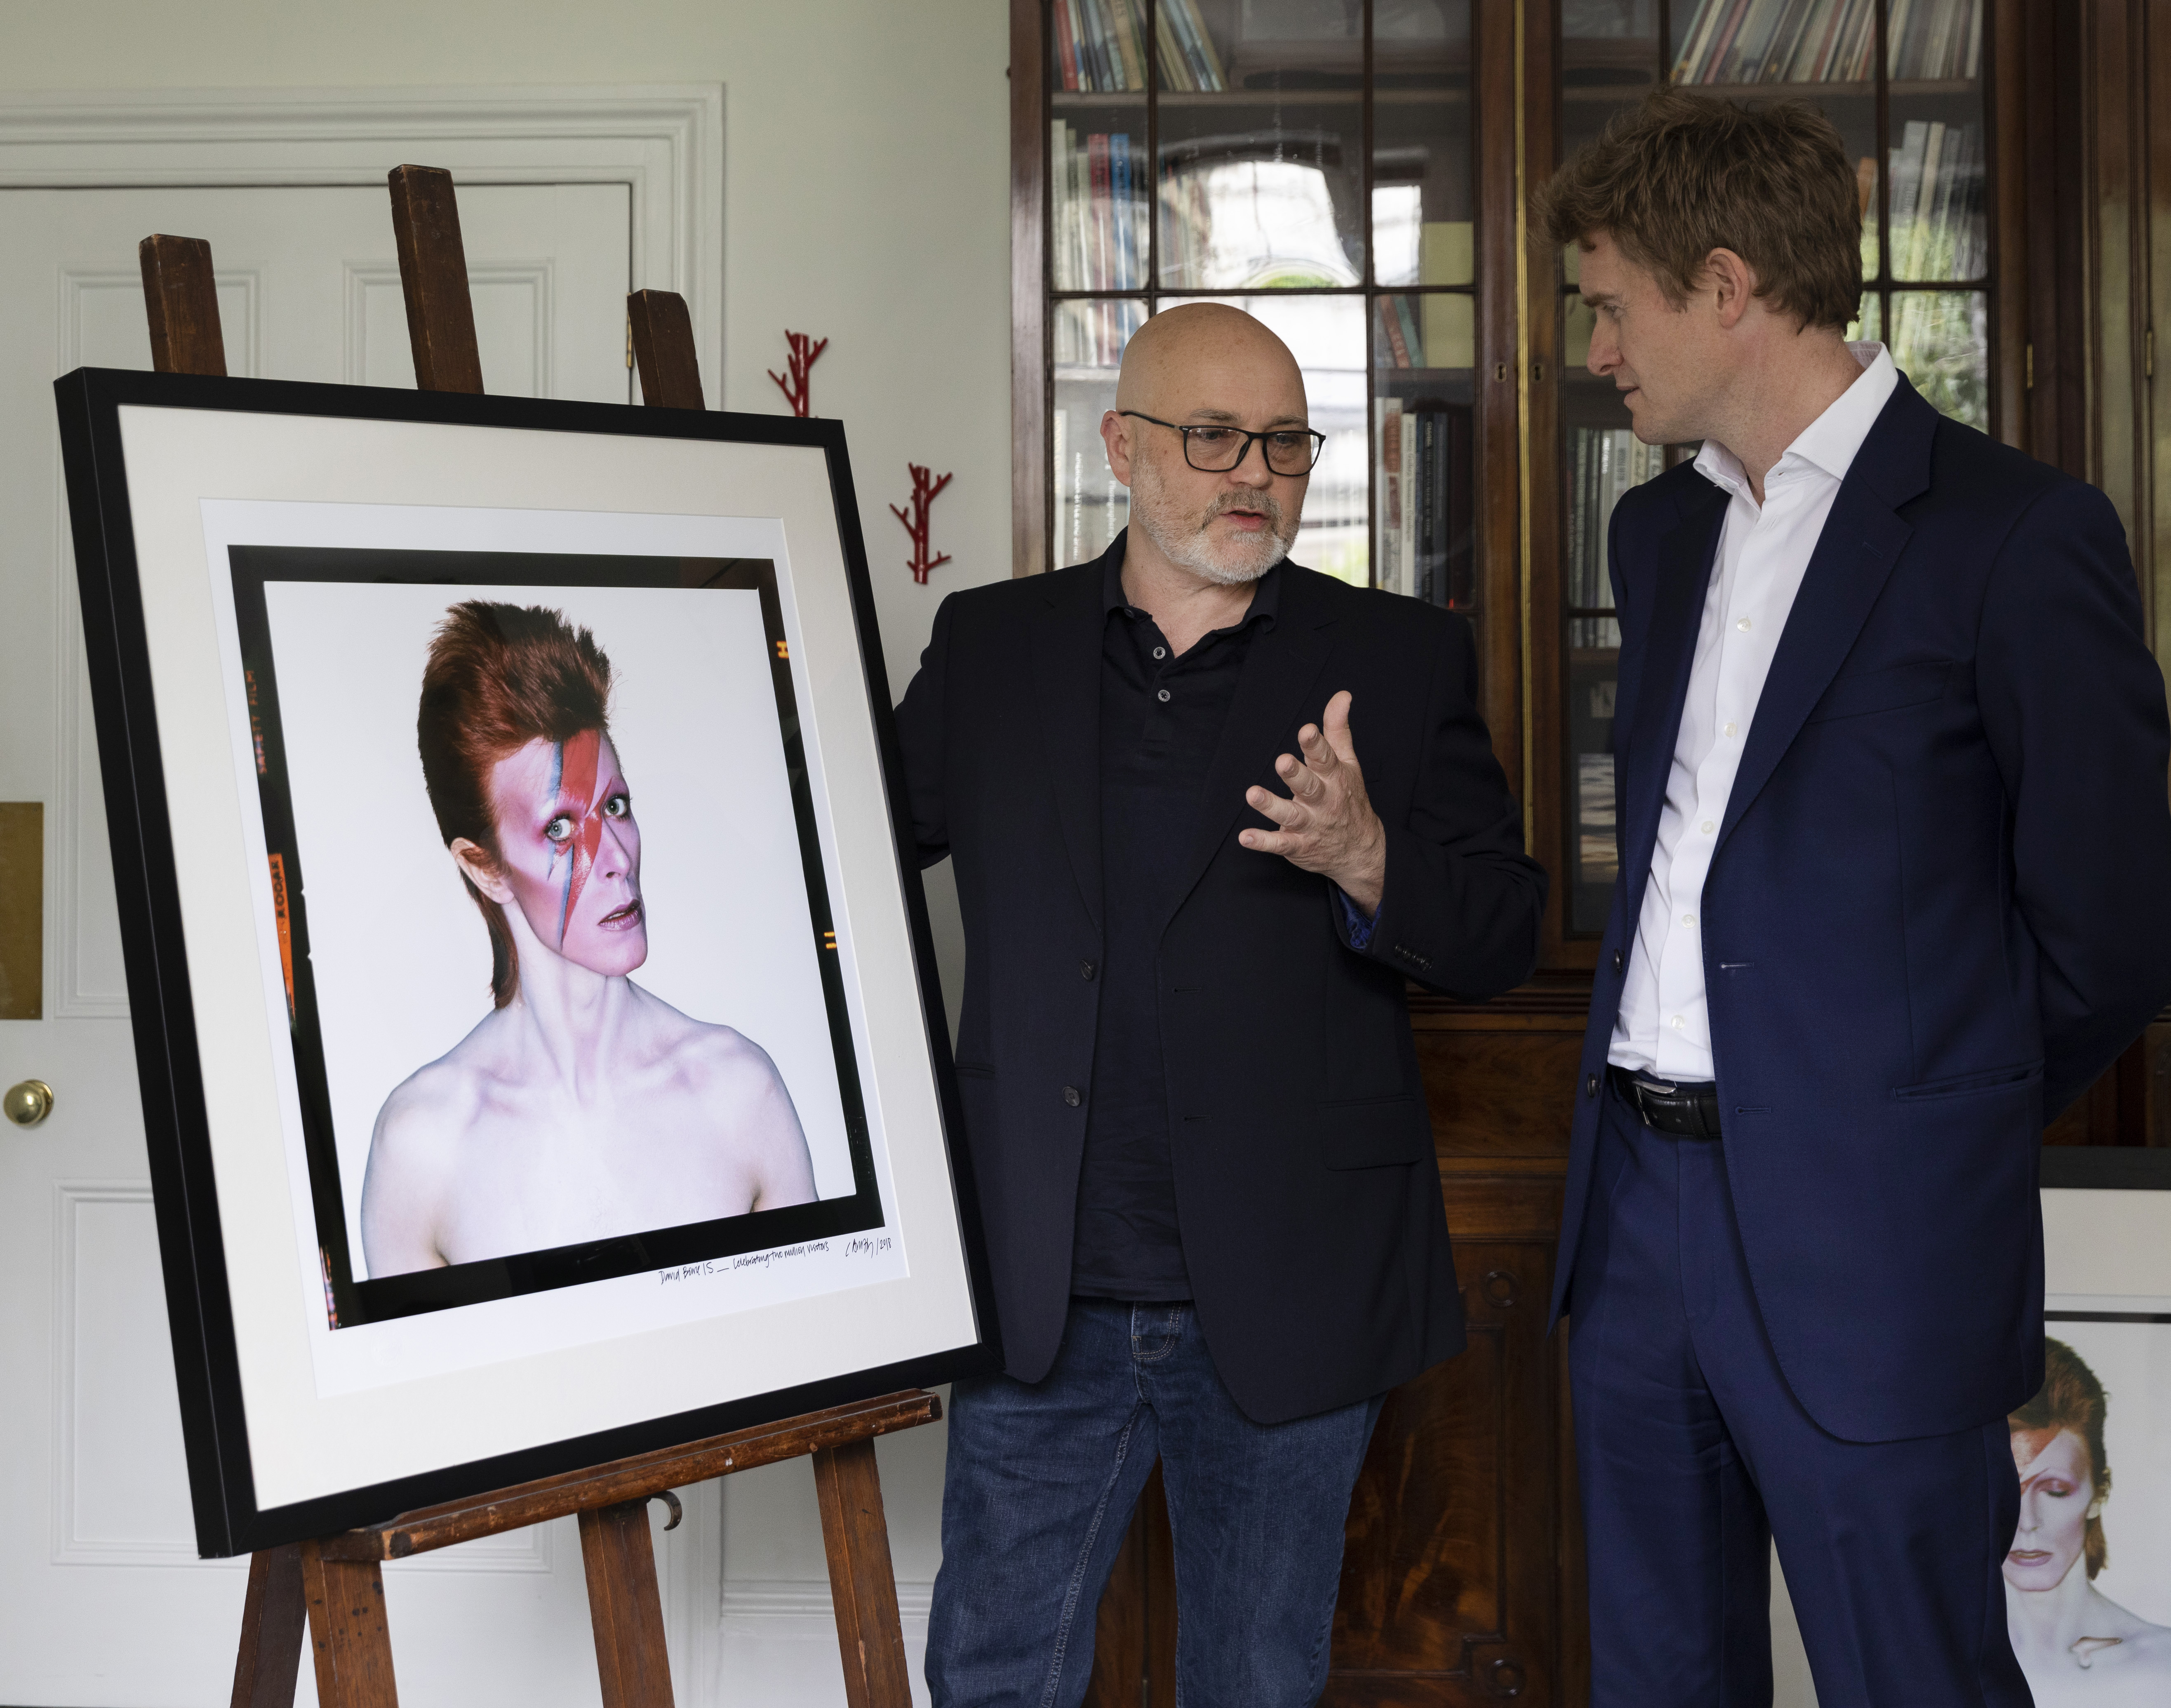 The picture of David Bowie